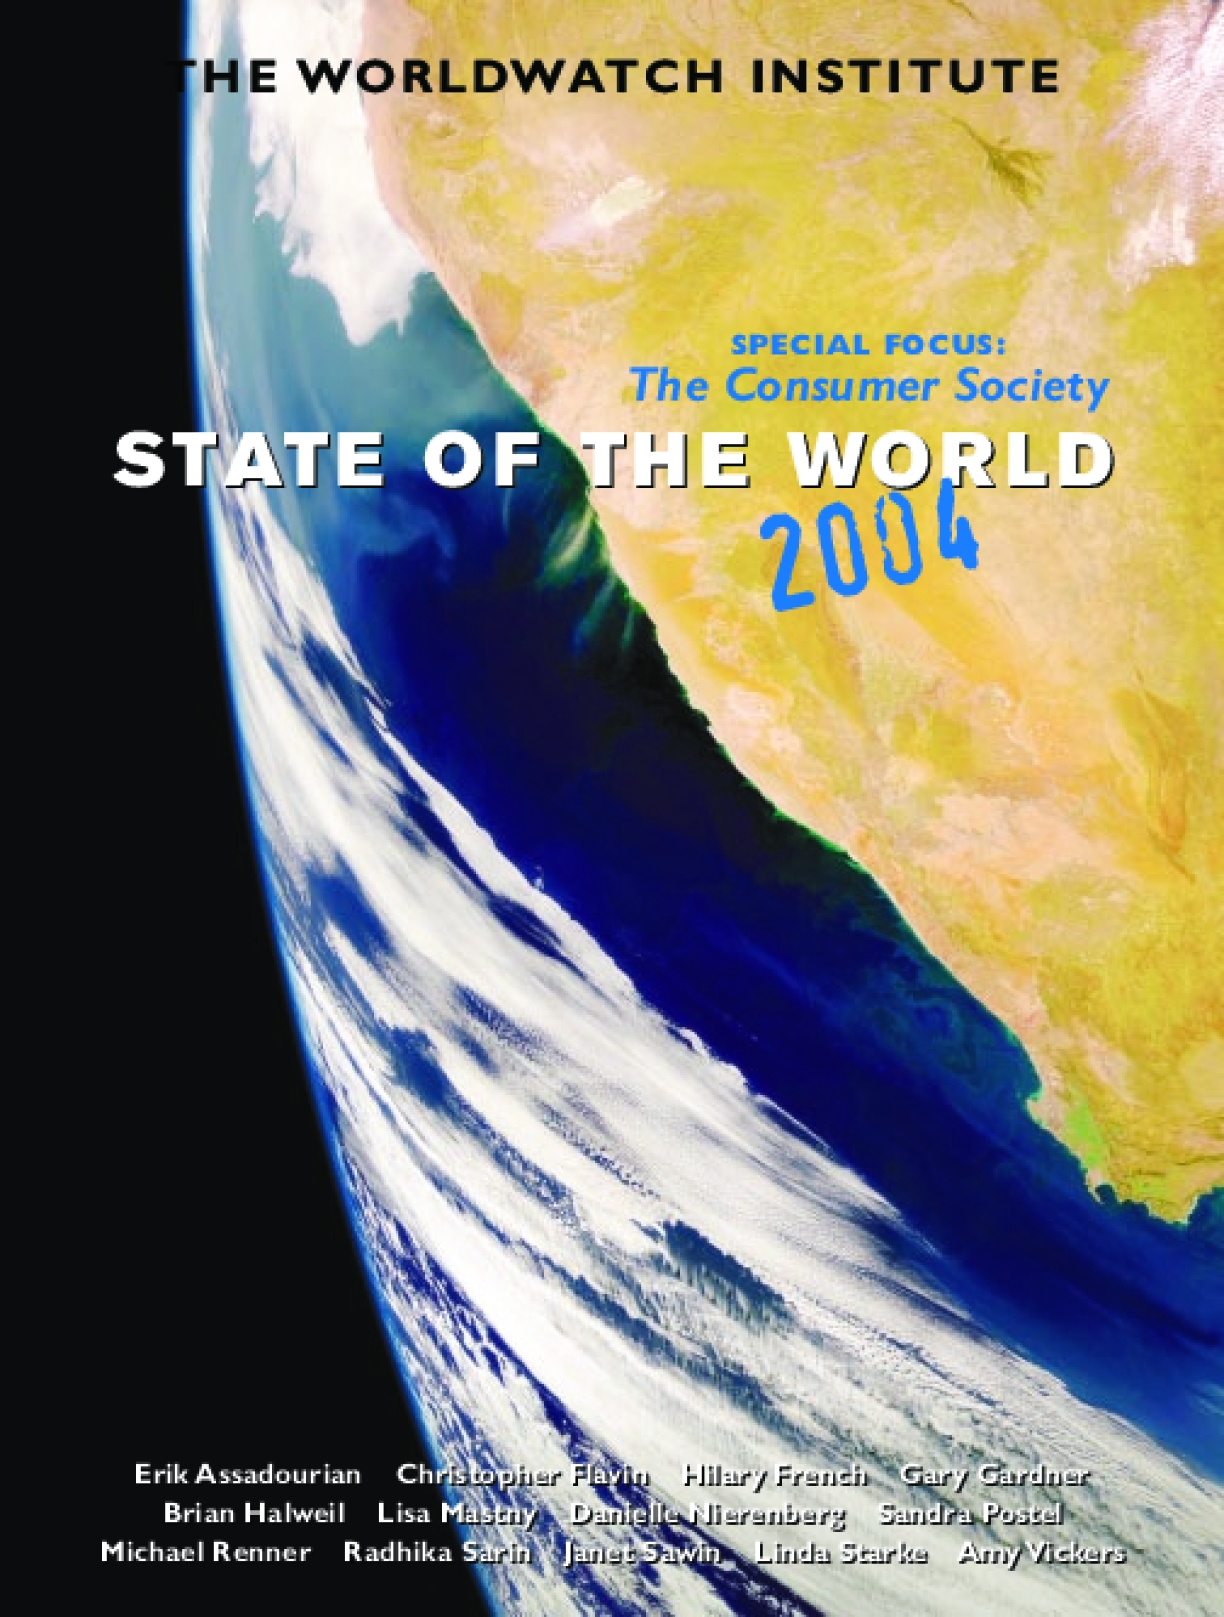 State of the World 2004: Special Focus The Consumer Society